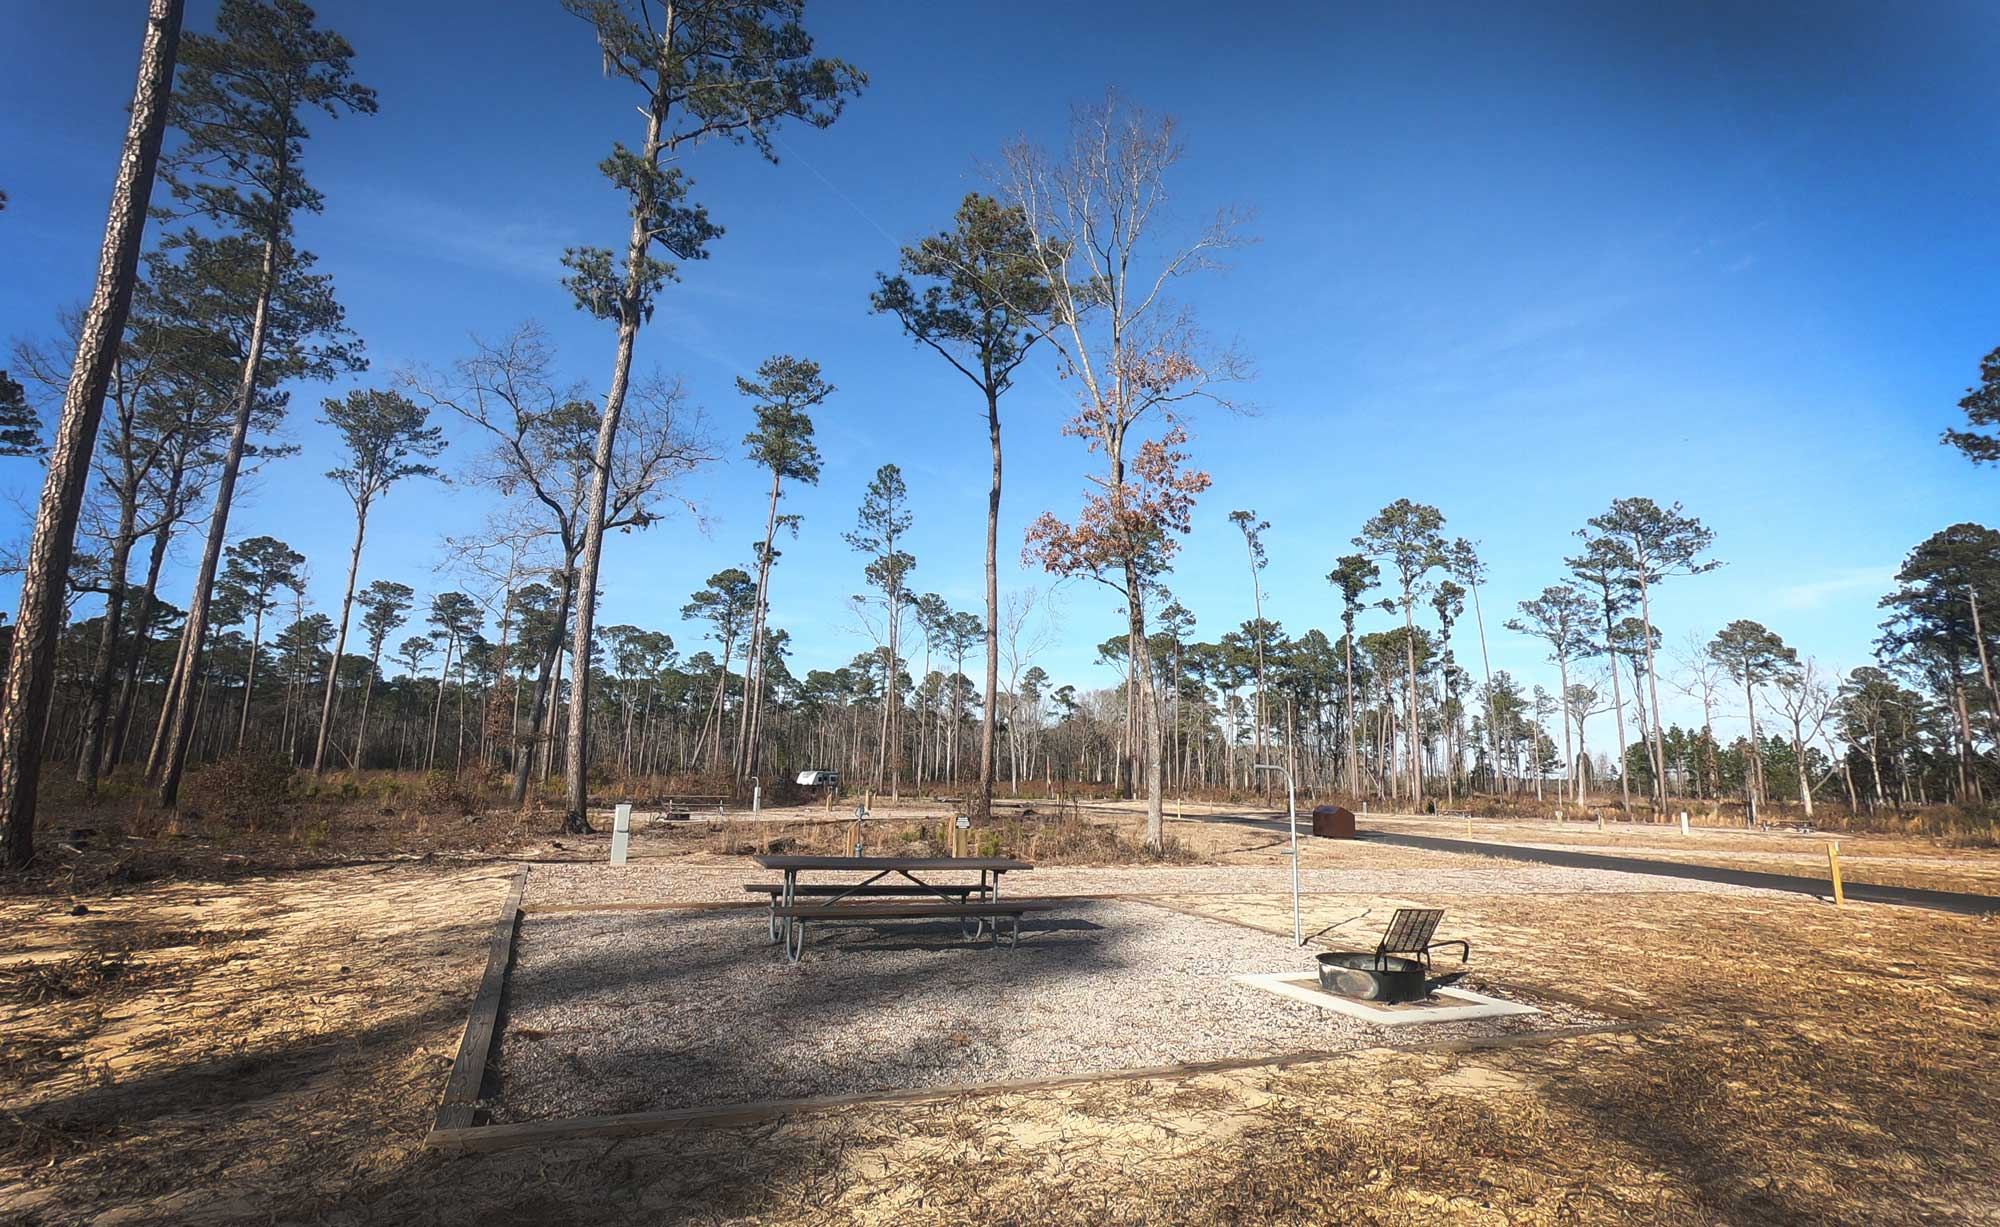 Goose Creek State Park RV campsite loop with picnic table and grill in North Carolina